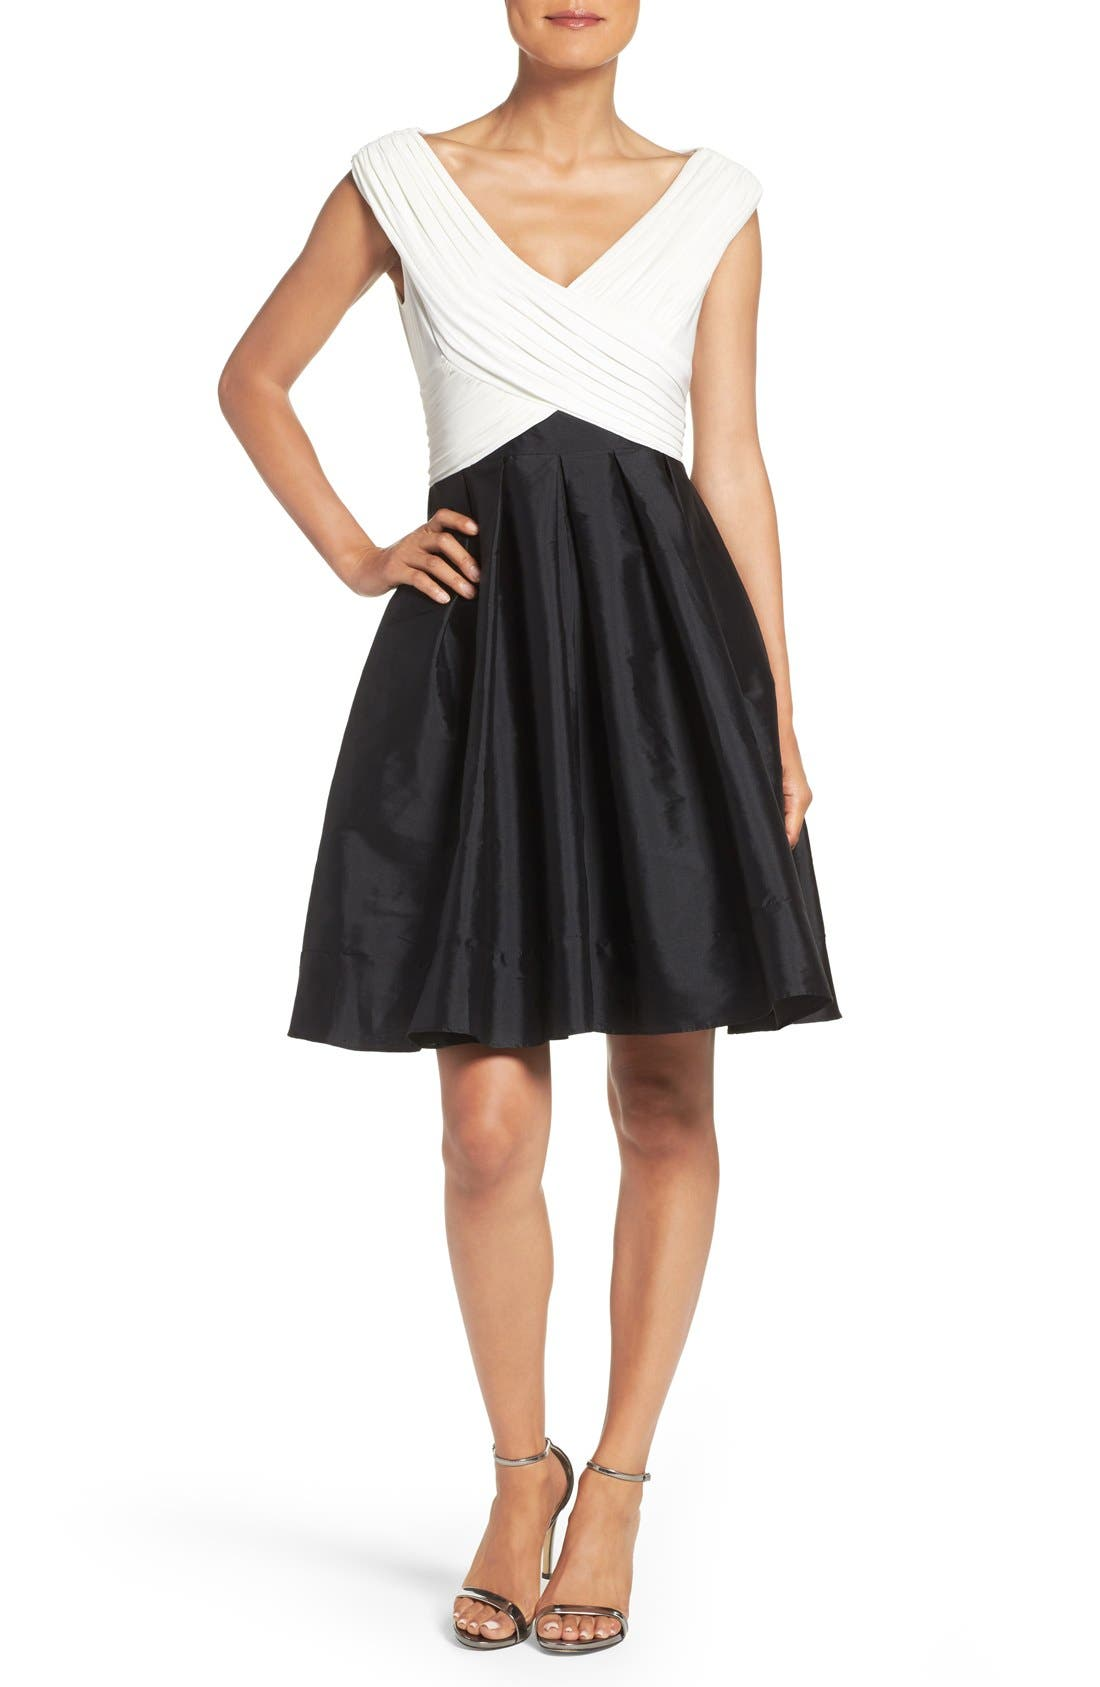 Alternate Image 1 Selected - Adrianna Papell Taffeta Fit & Flare Dress (Regular & Petite)